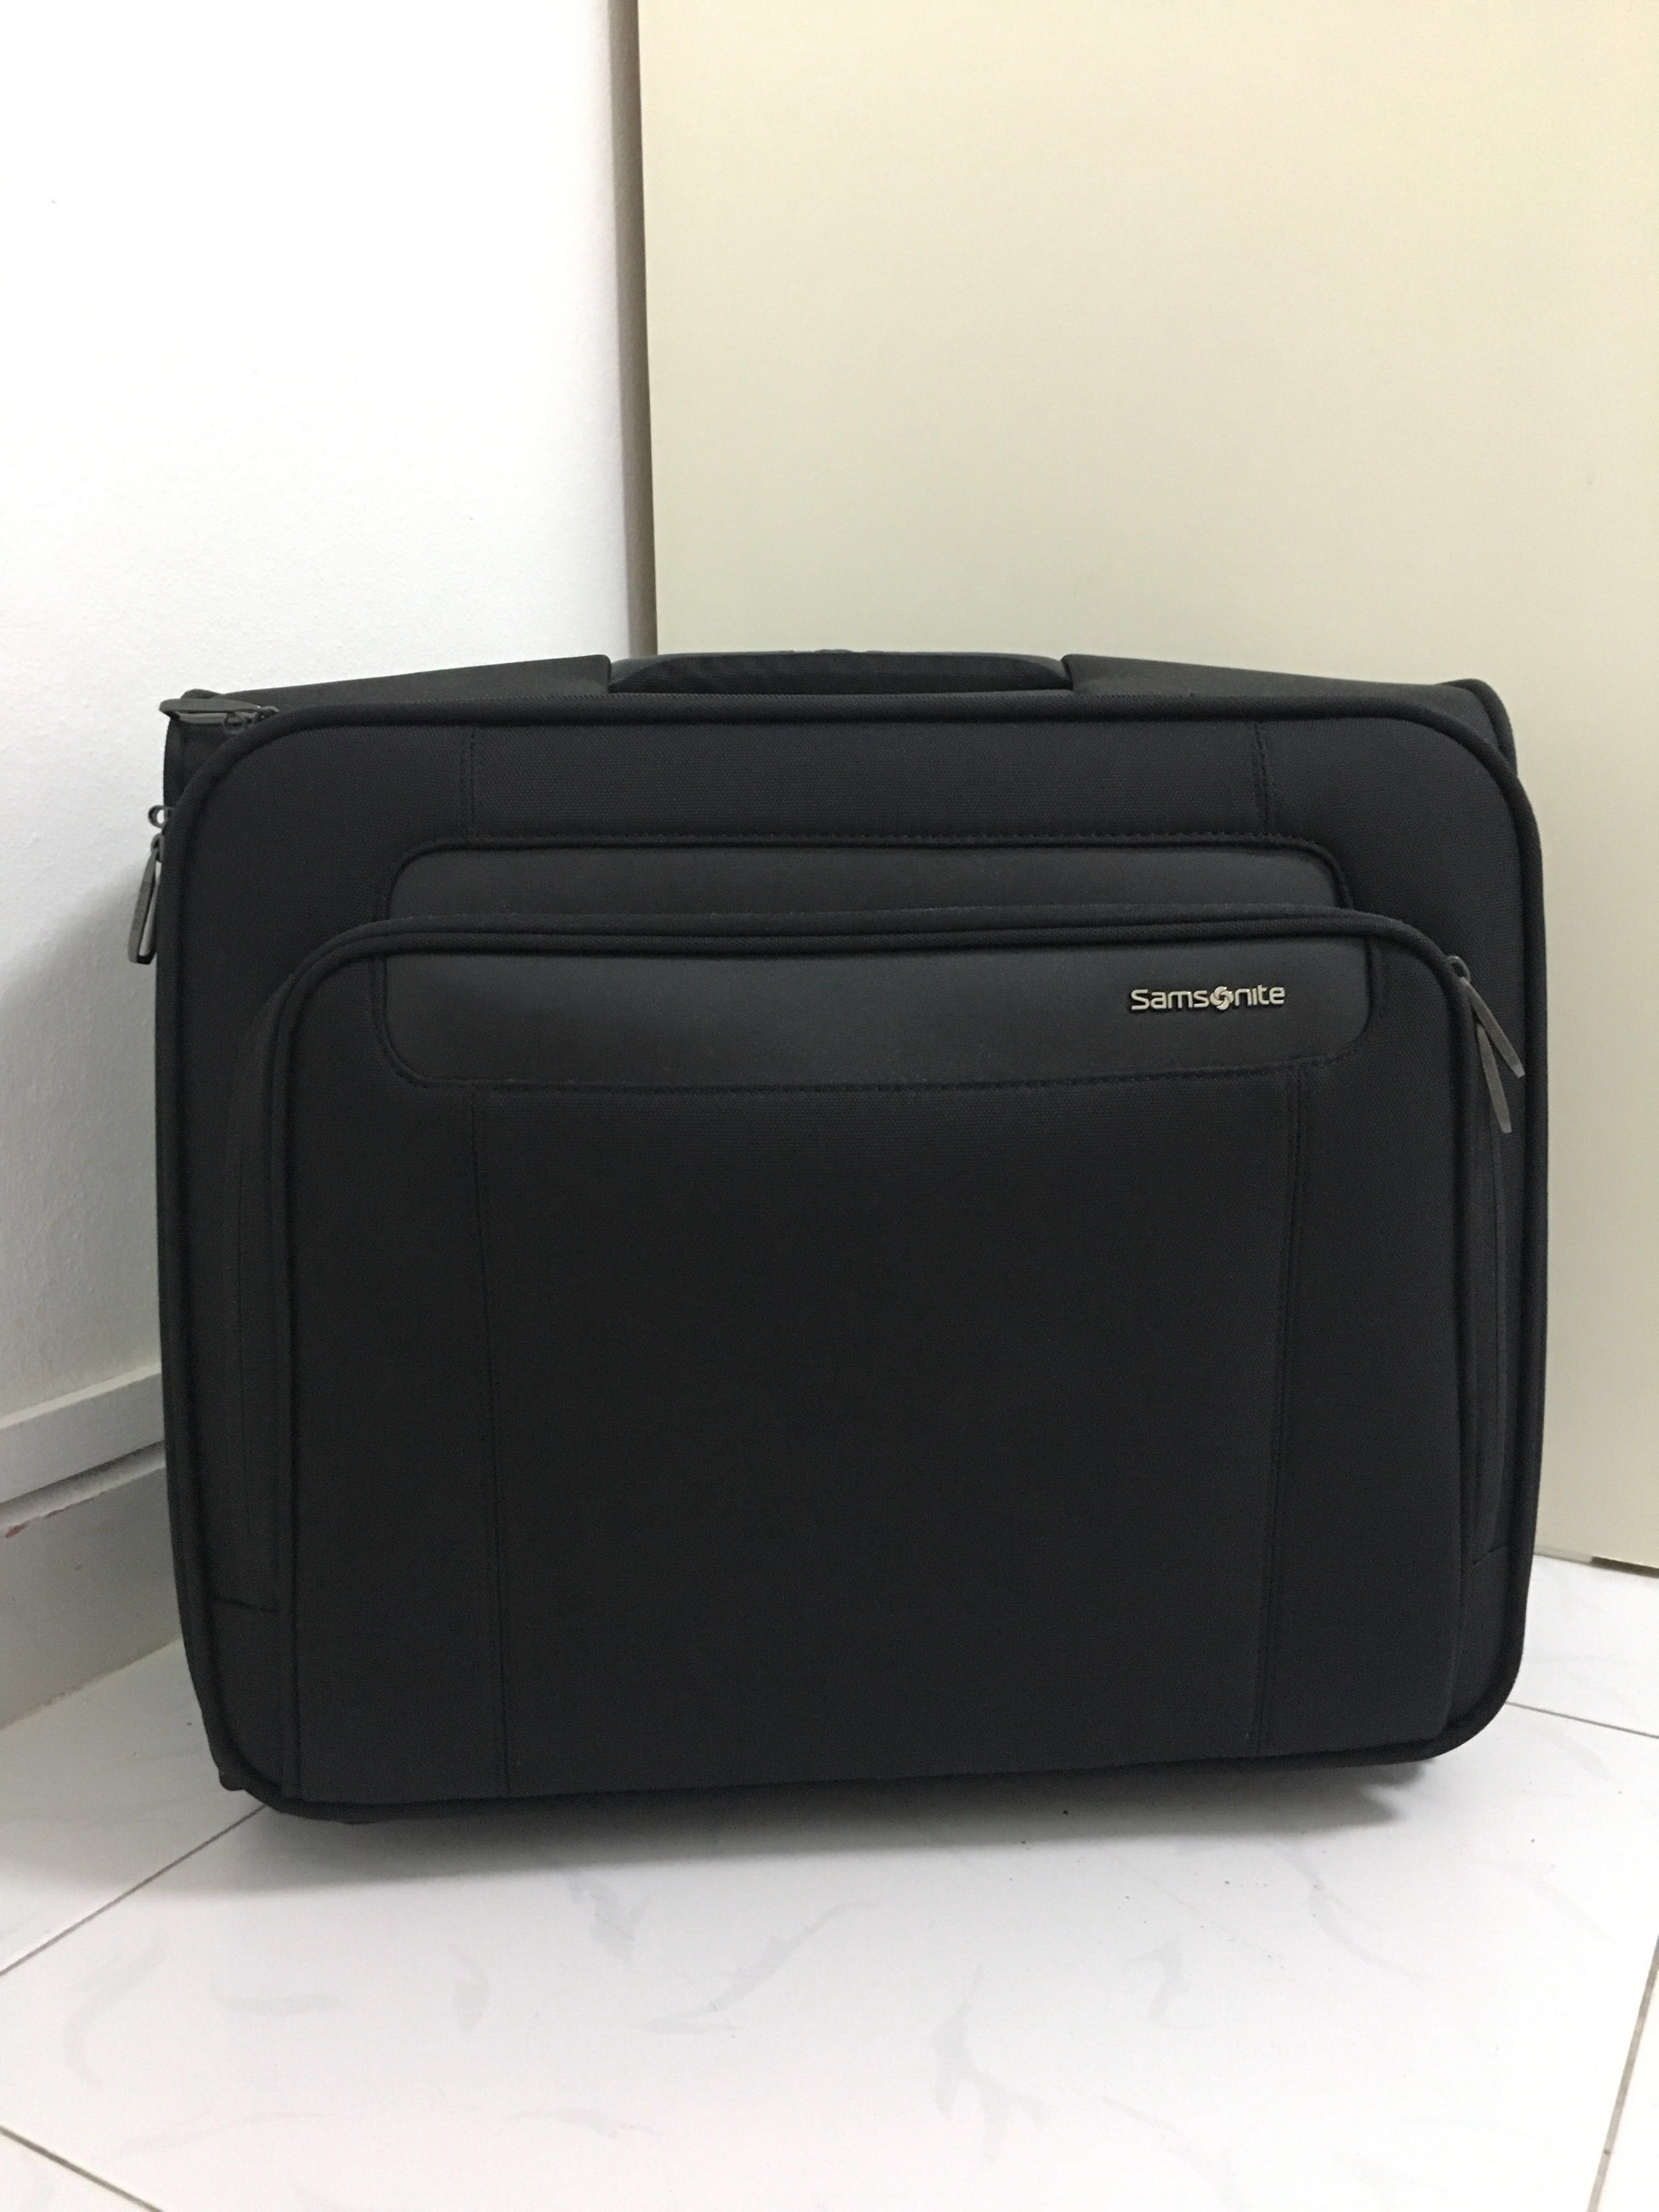 ef59cbeb9a9 SAMSONITE Rolling Tote, Travel, Travel Essentials, Luggage on Carousell